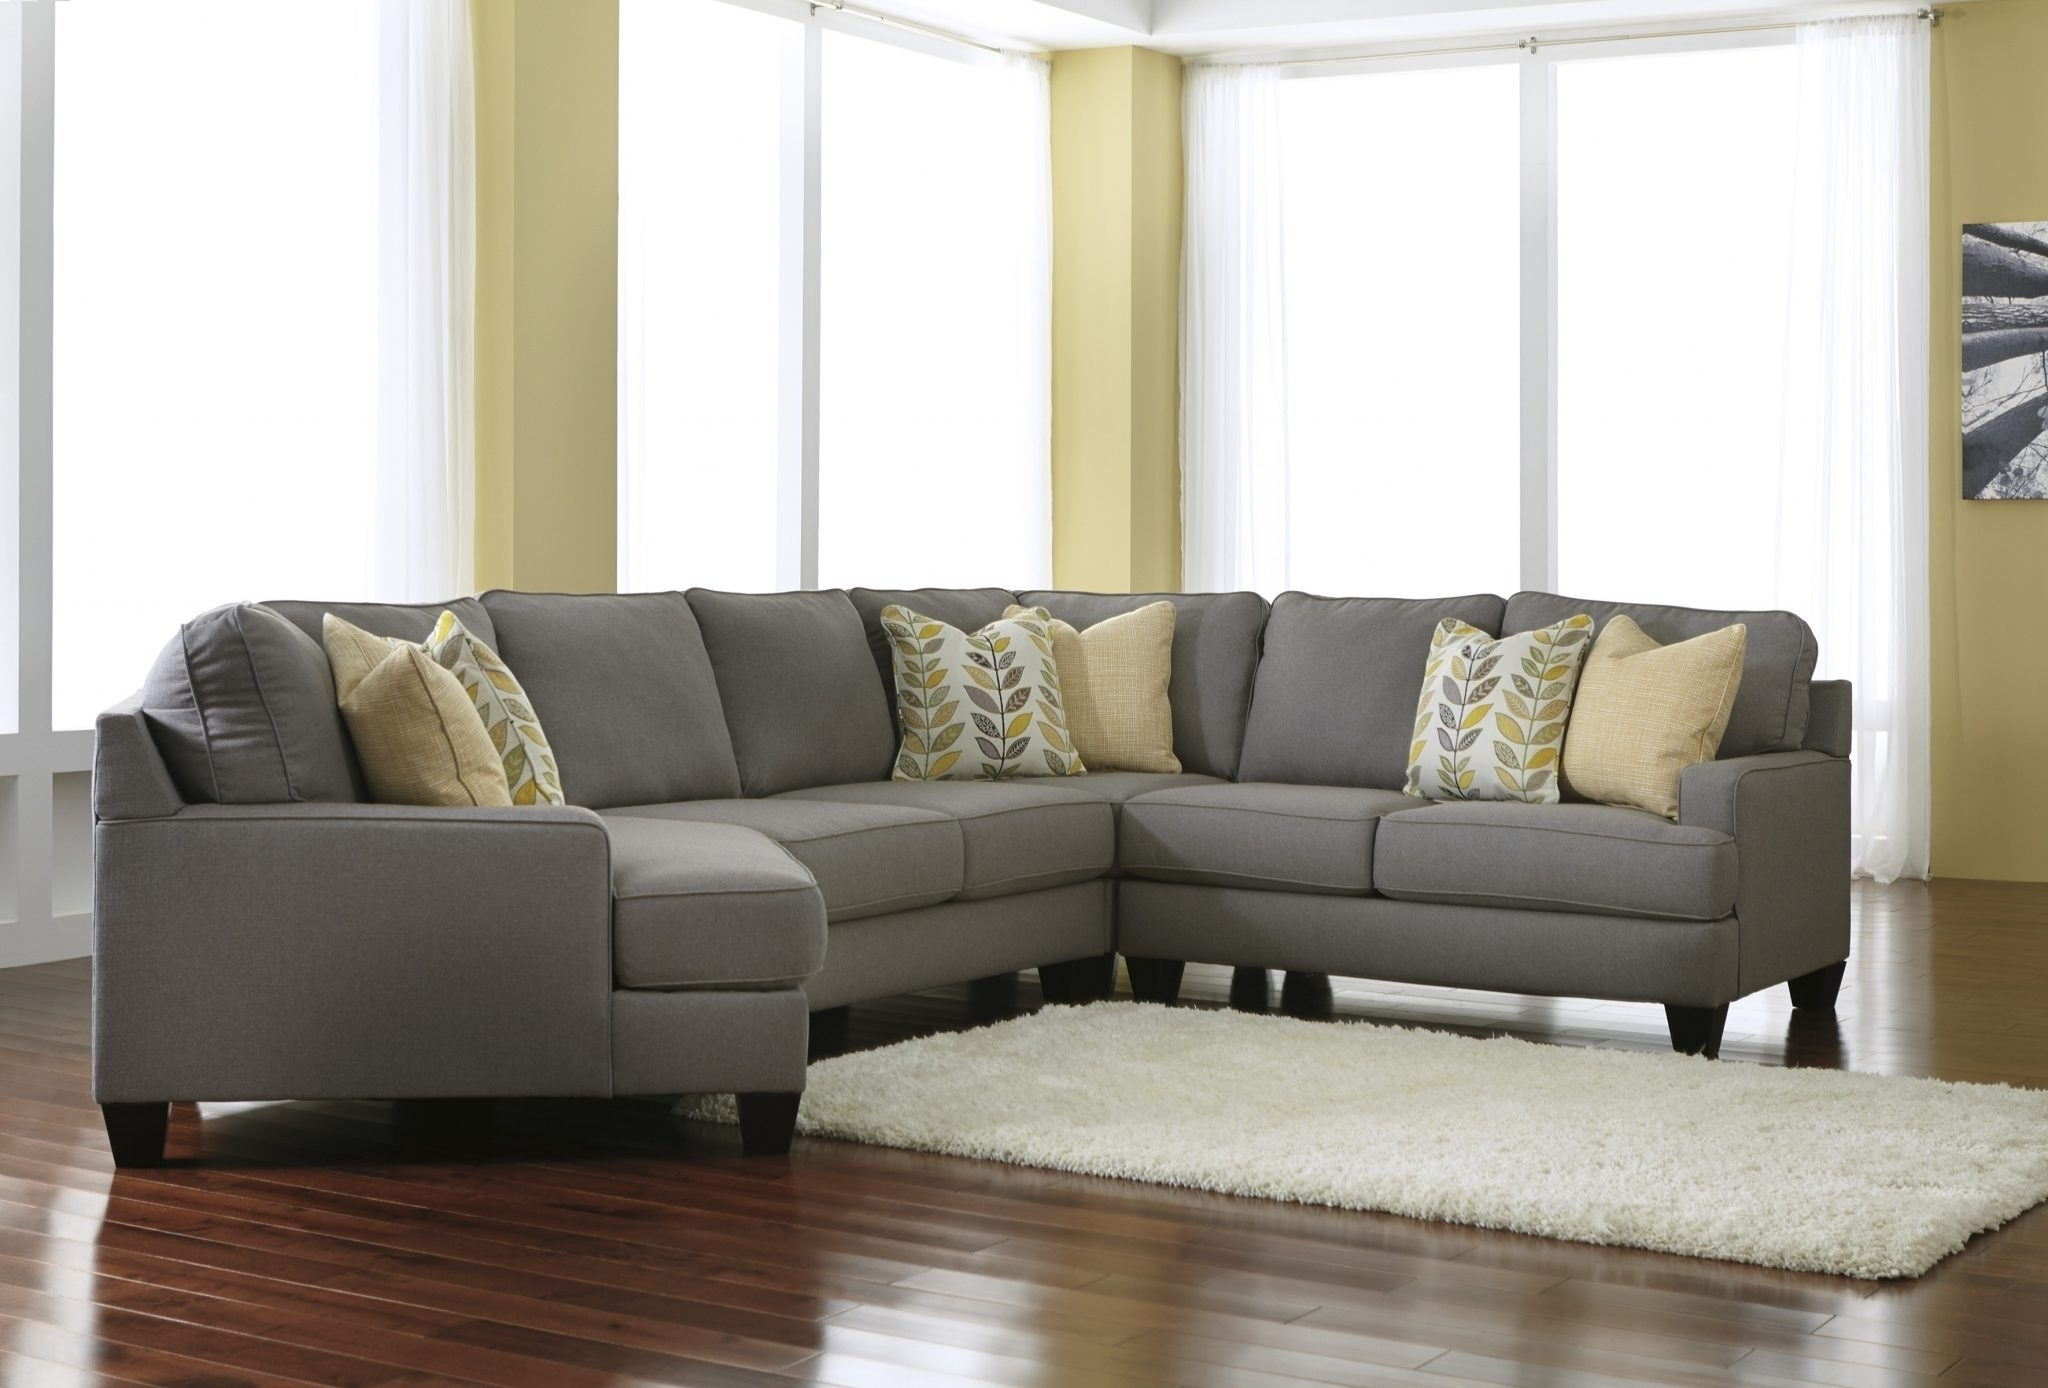 20 Ideas Of Ventura County Sectional Sofas in Ventura County Sectional Sofas